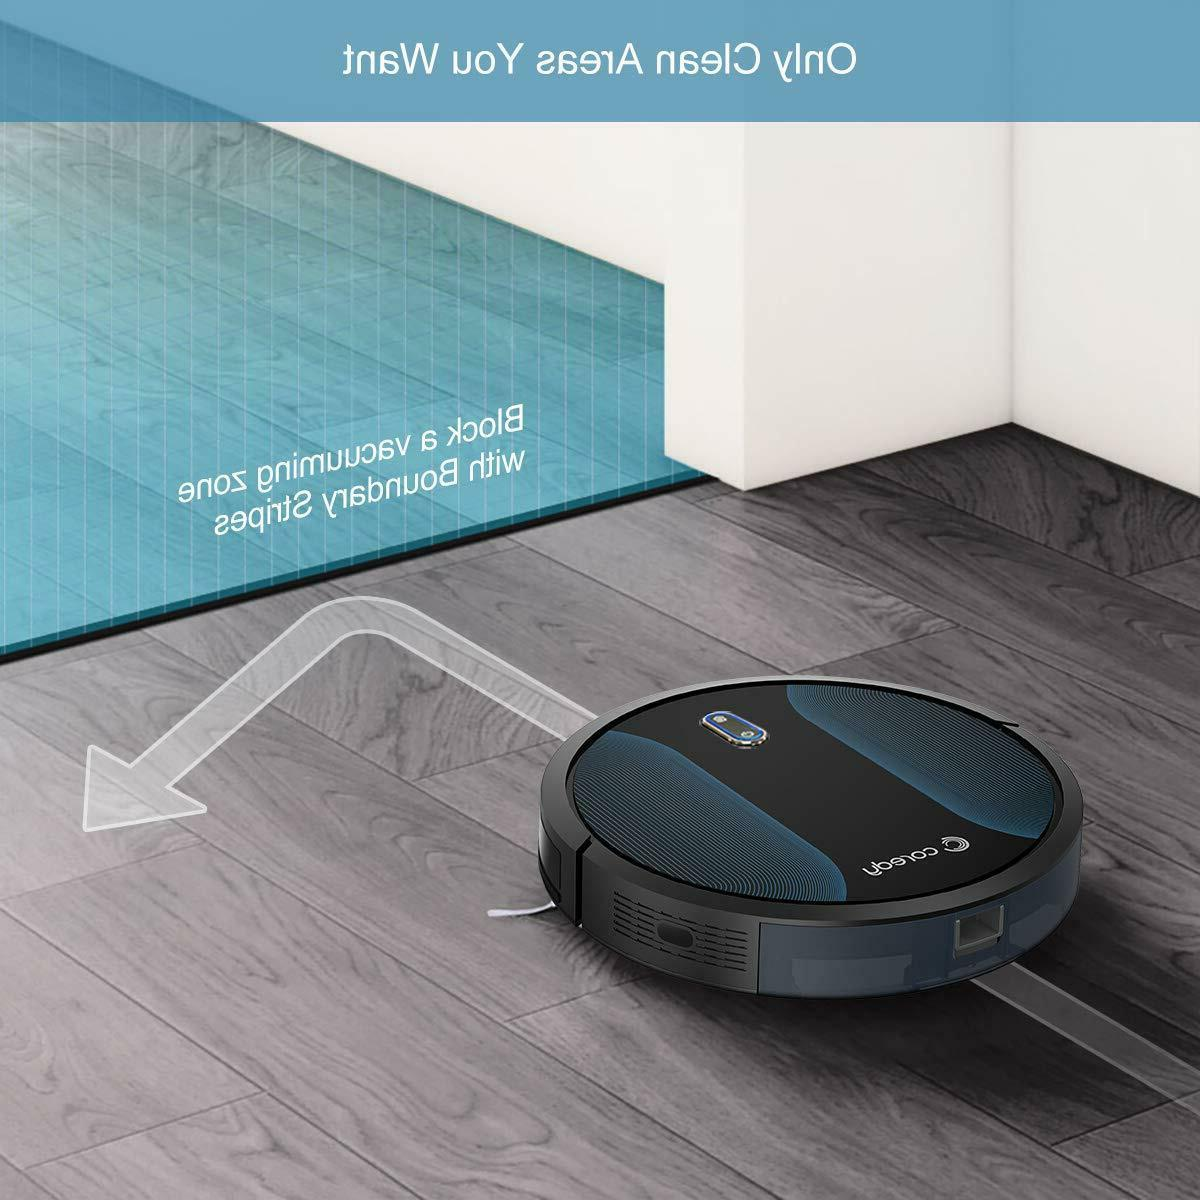 Coredy R500+ Upgraded Self-Charge Robotic Vacuums